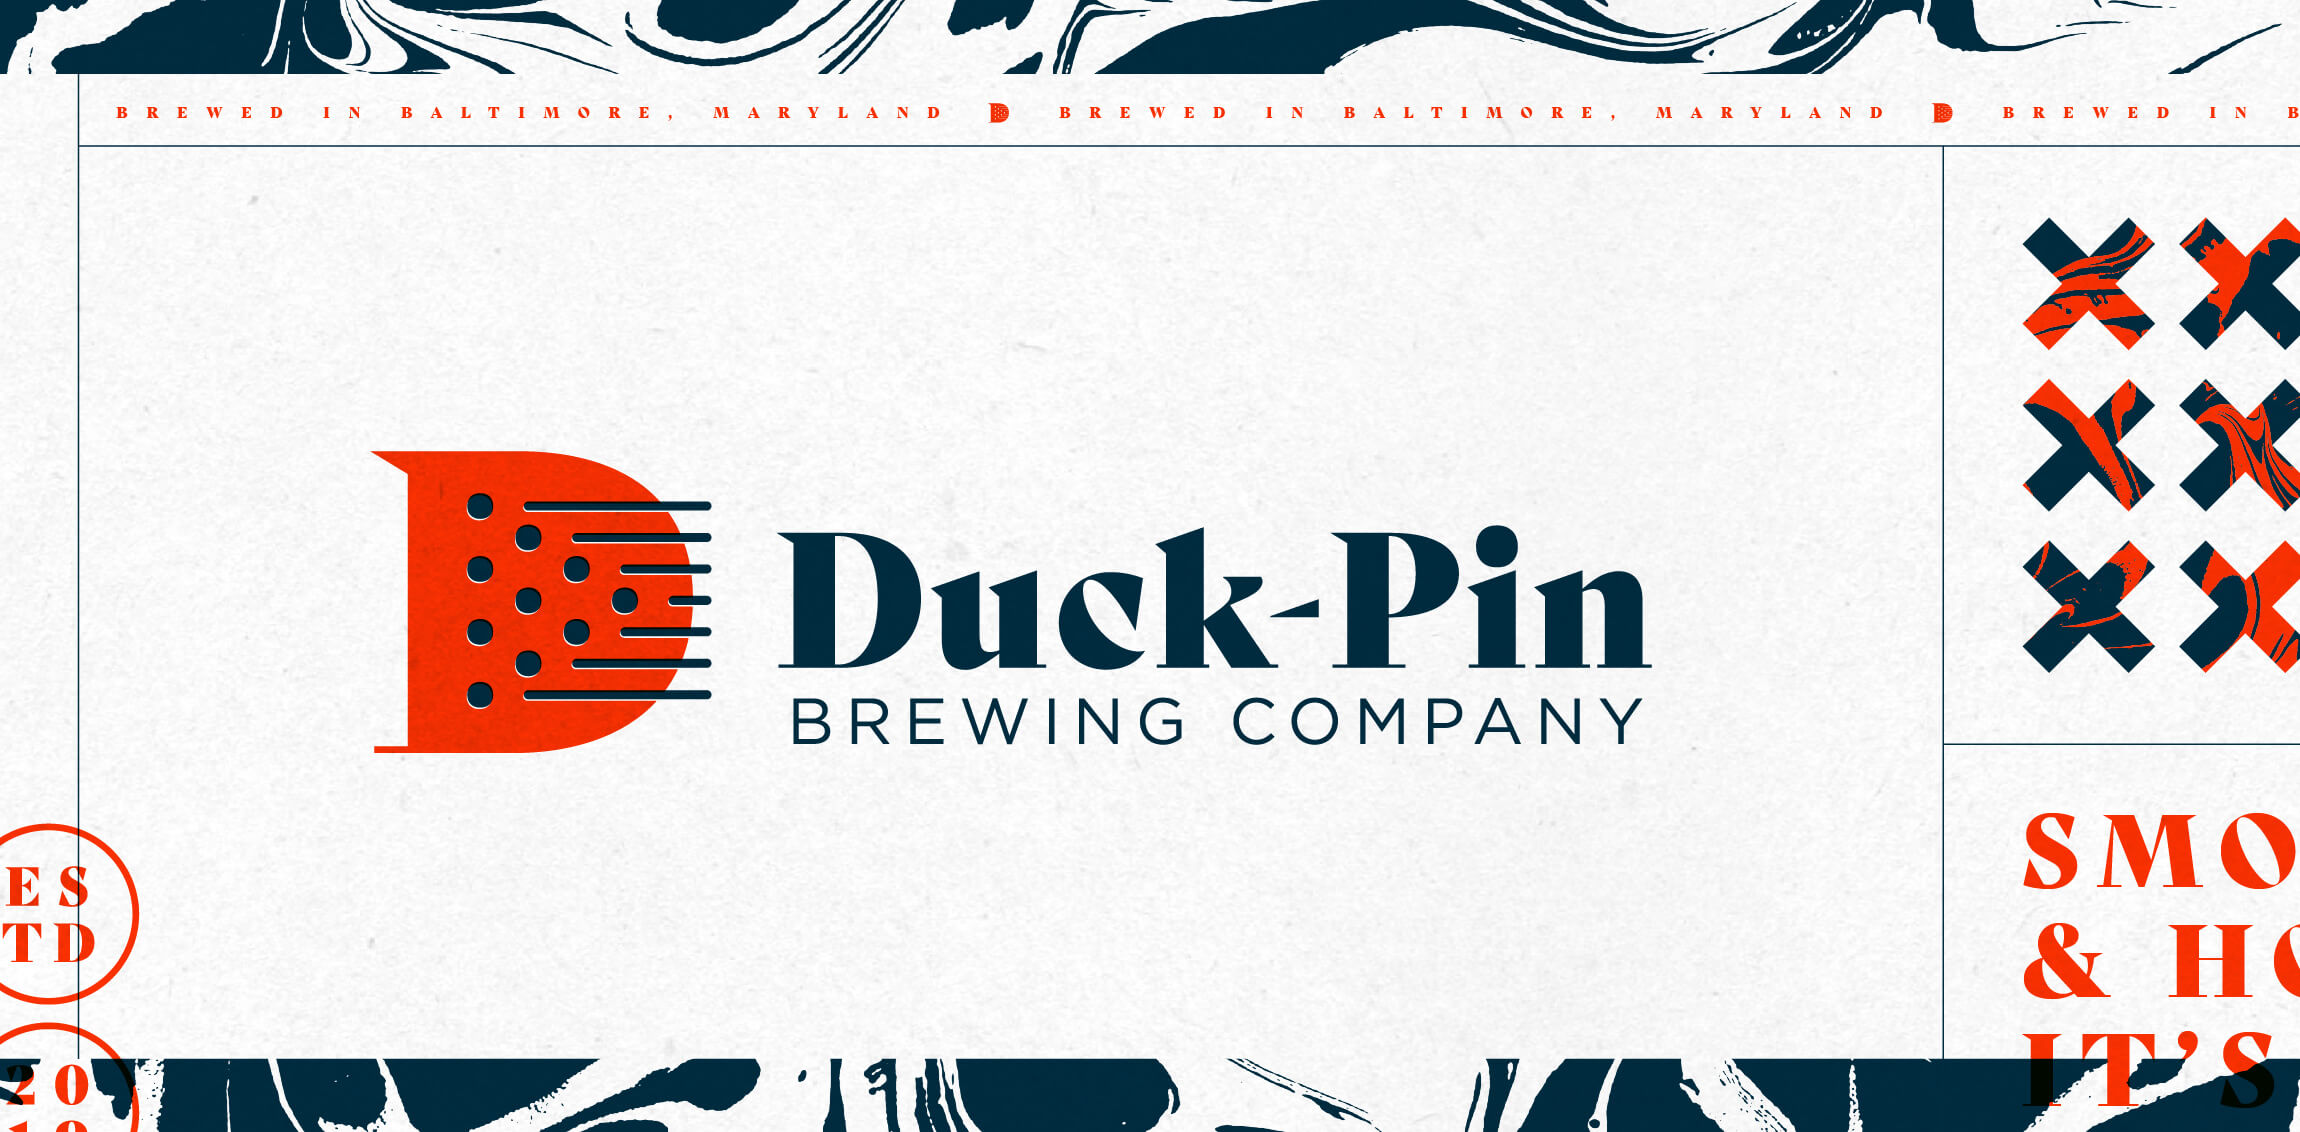 Duck-Pin Brewing Company